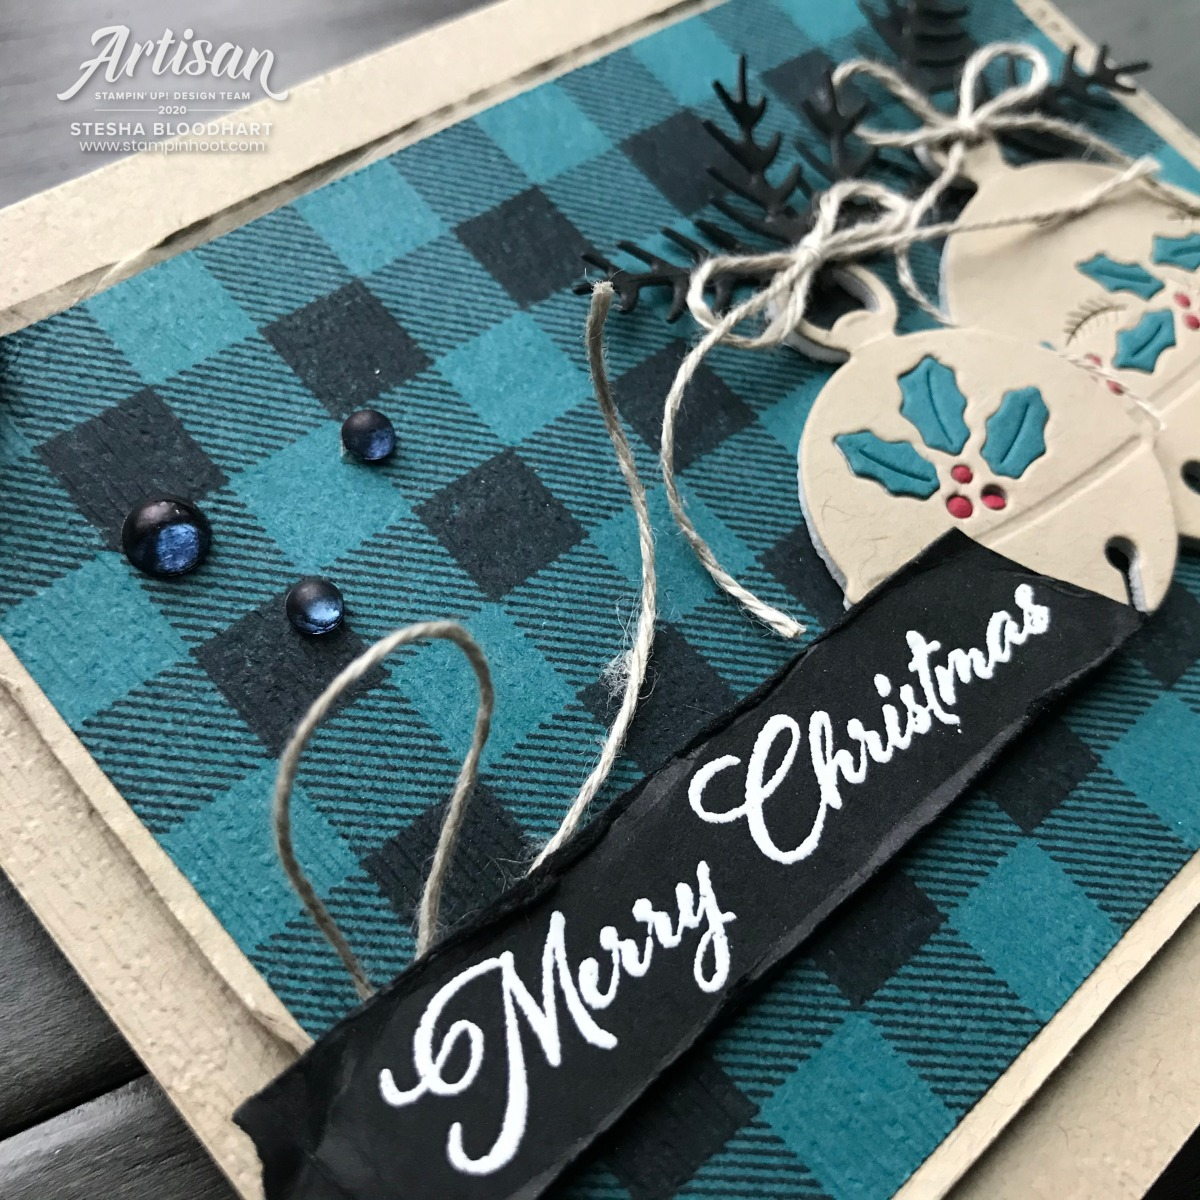 Cherish the Season Bundle from Stampin' Up! Merry Christmas Card by Stesha Bloodhart, Stampin' Hoot! Be Inspired Blog Hop Updated Closeup